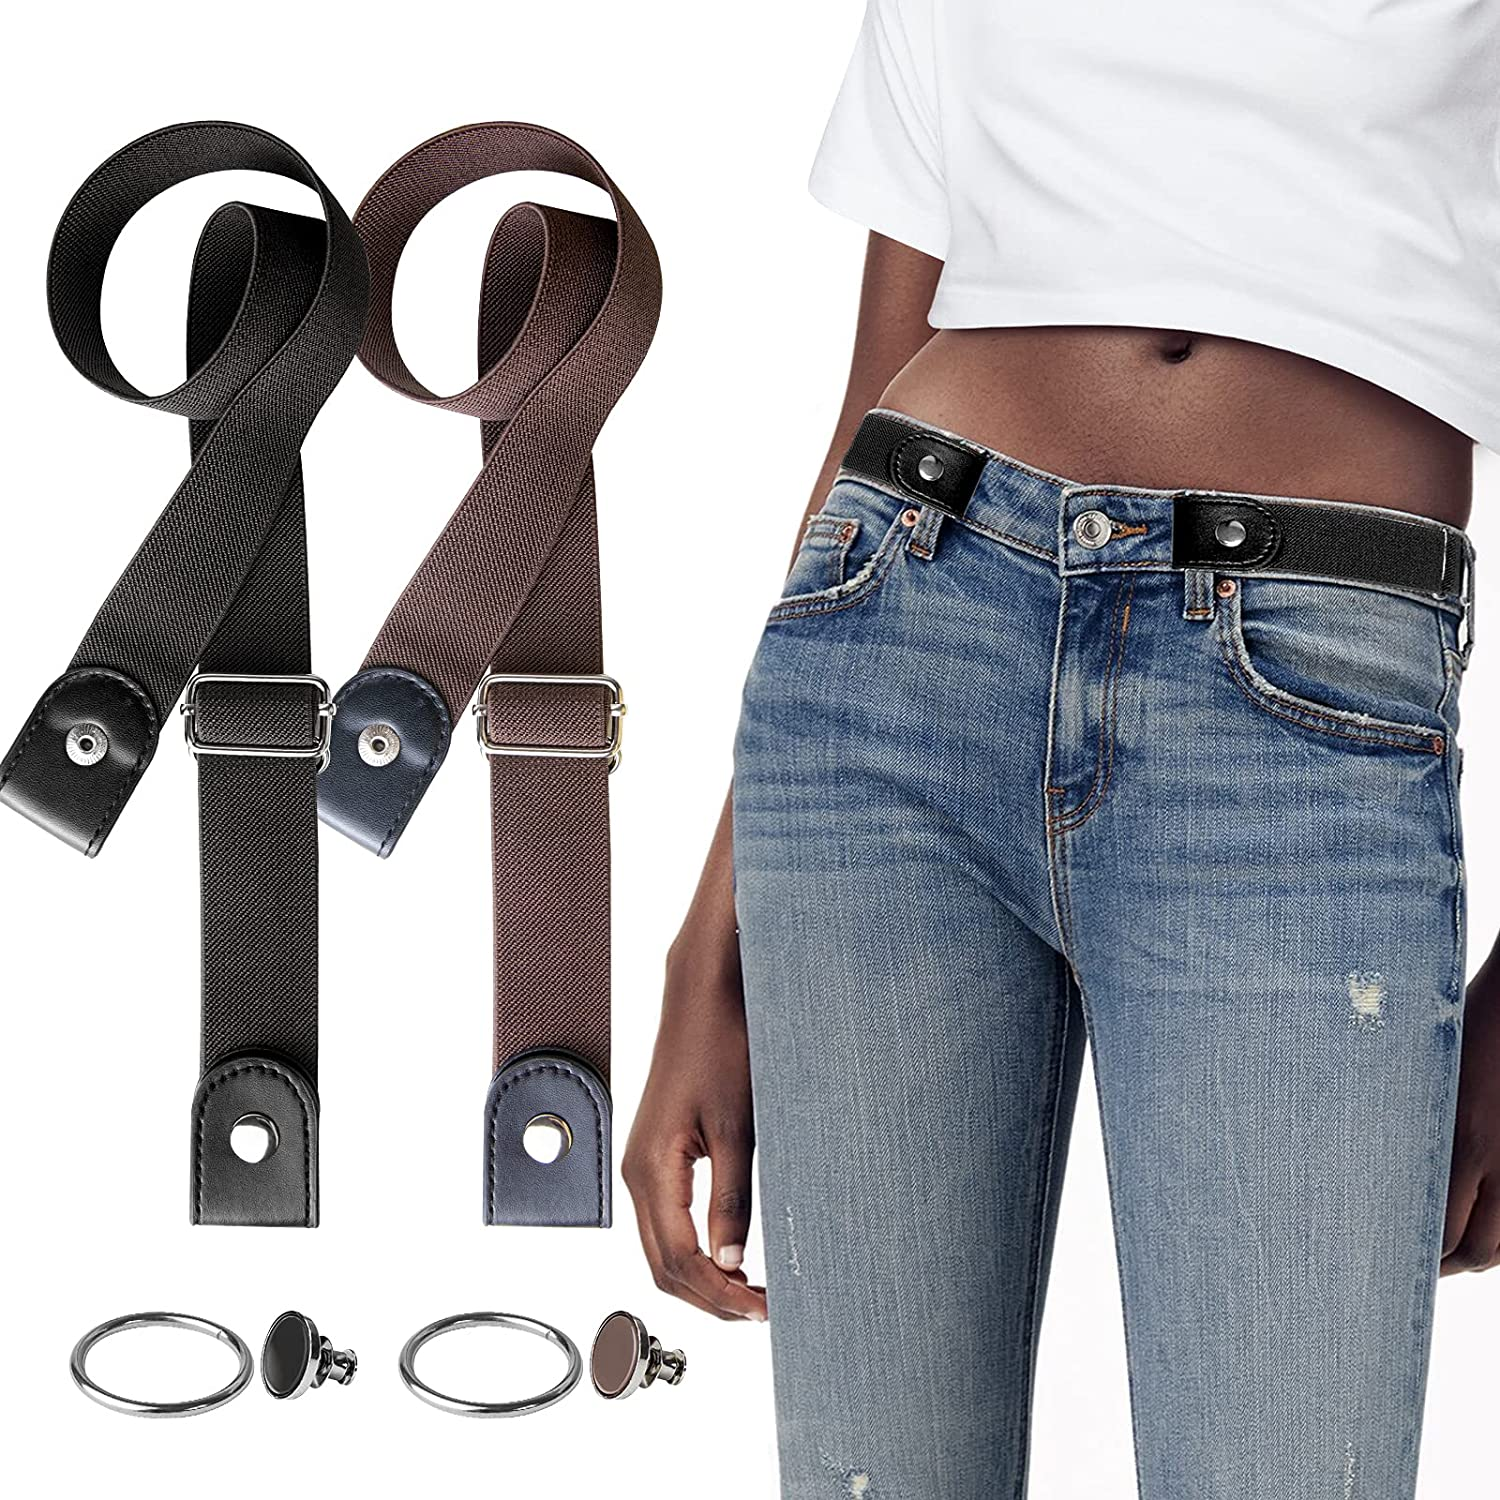 YUNDUOJIA 6 Sets No Buckle Elastic for Stretch 70% OFF Outlet Direct store Comfortable Belts